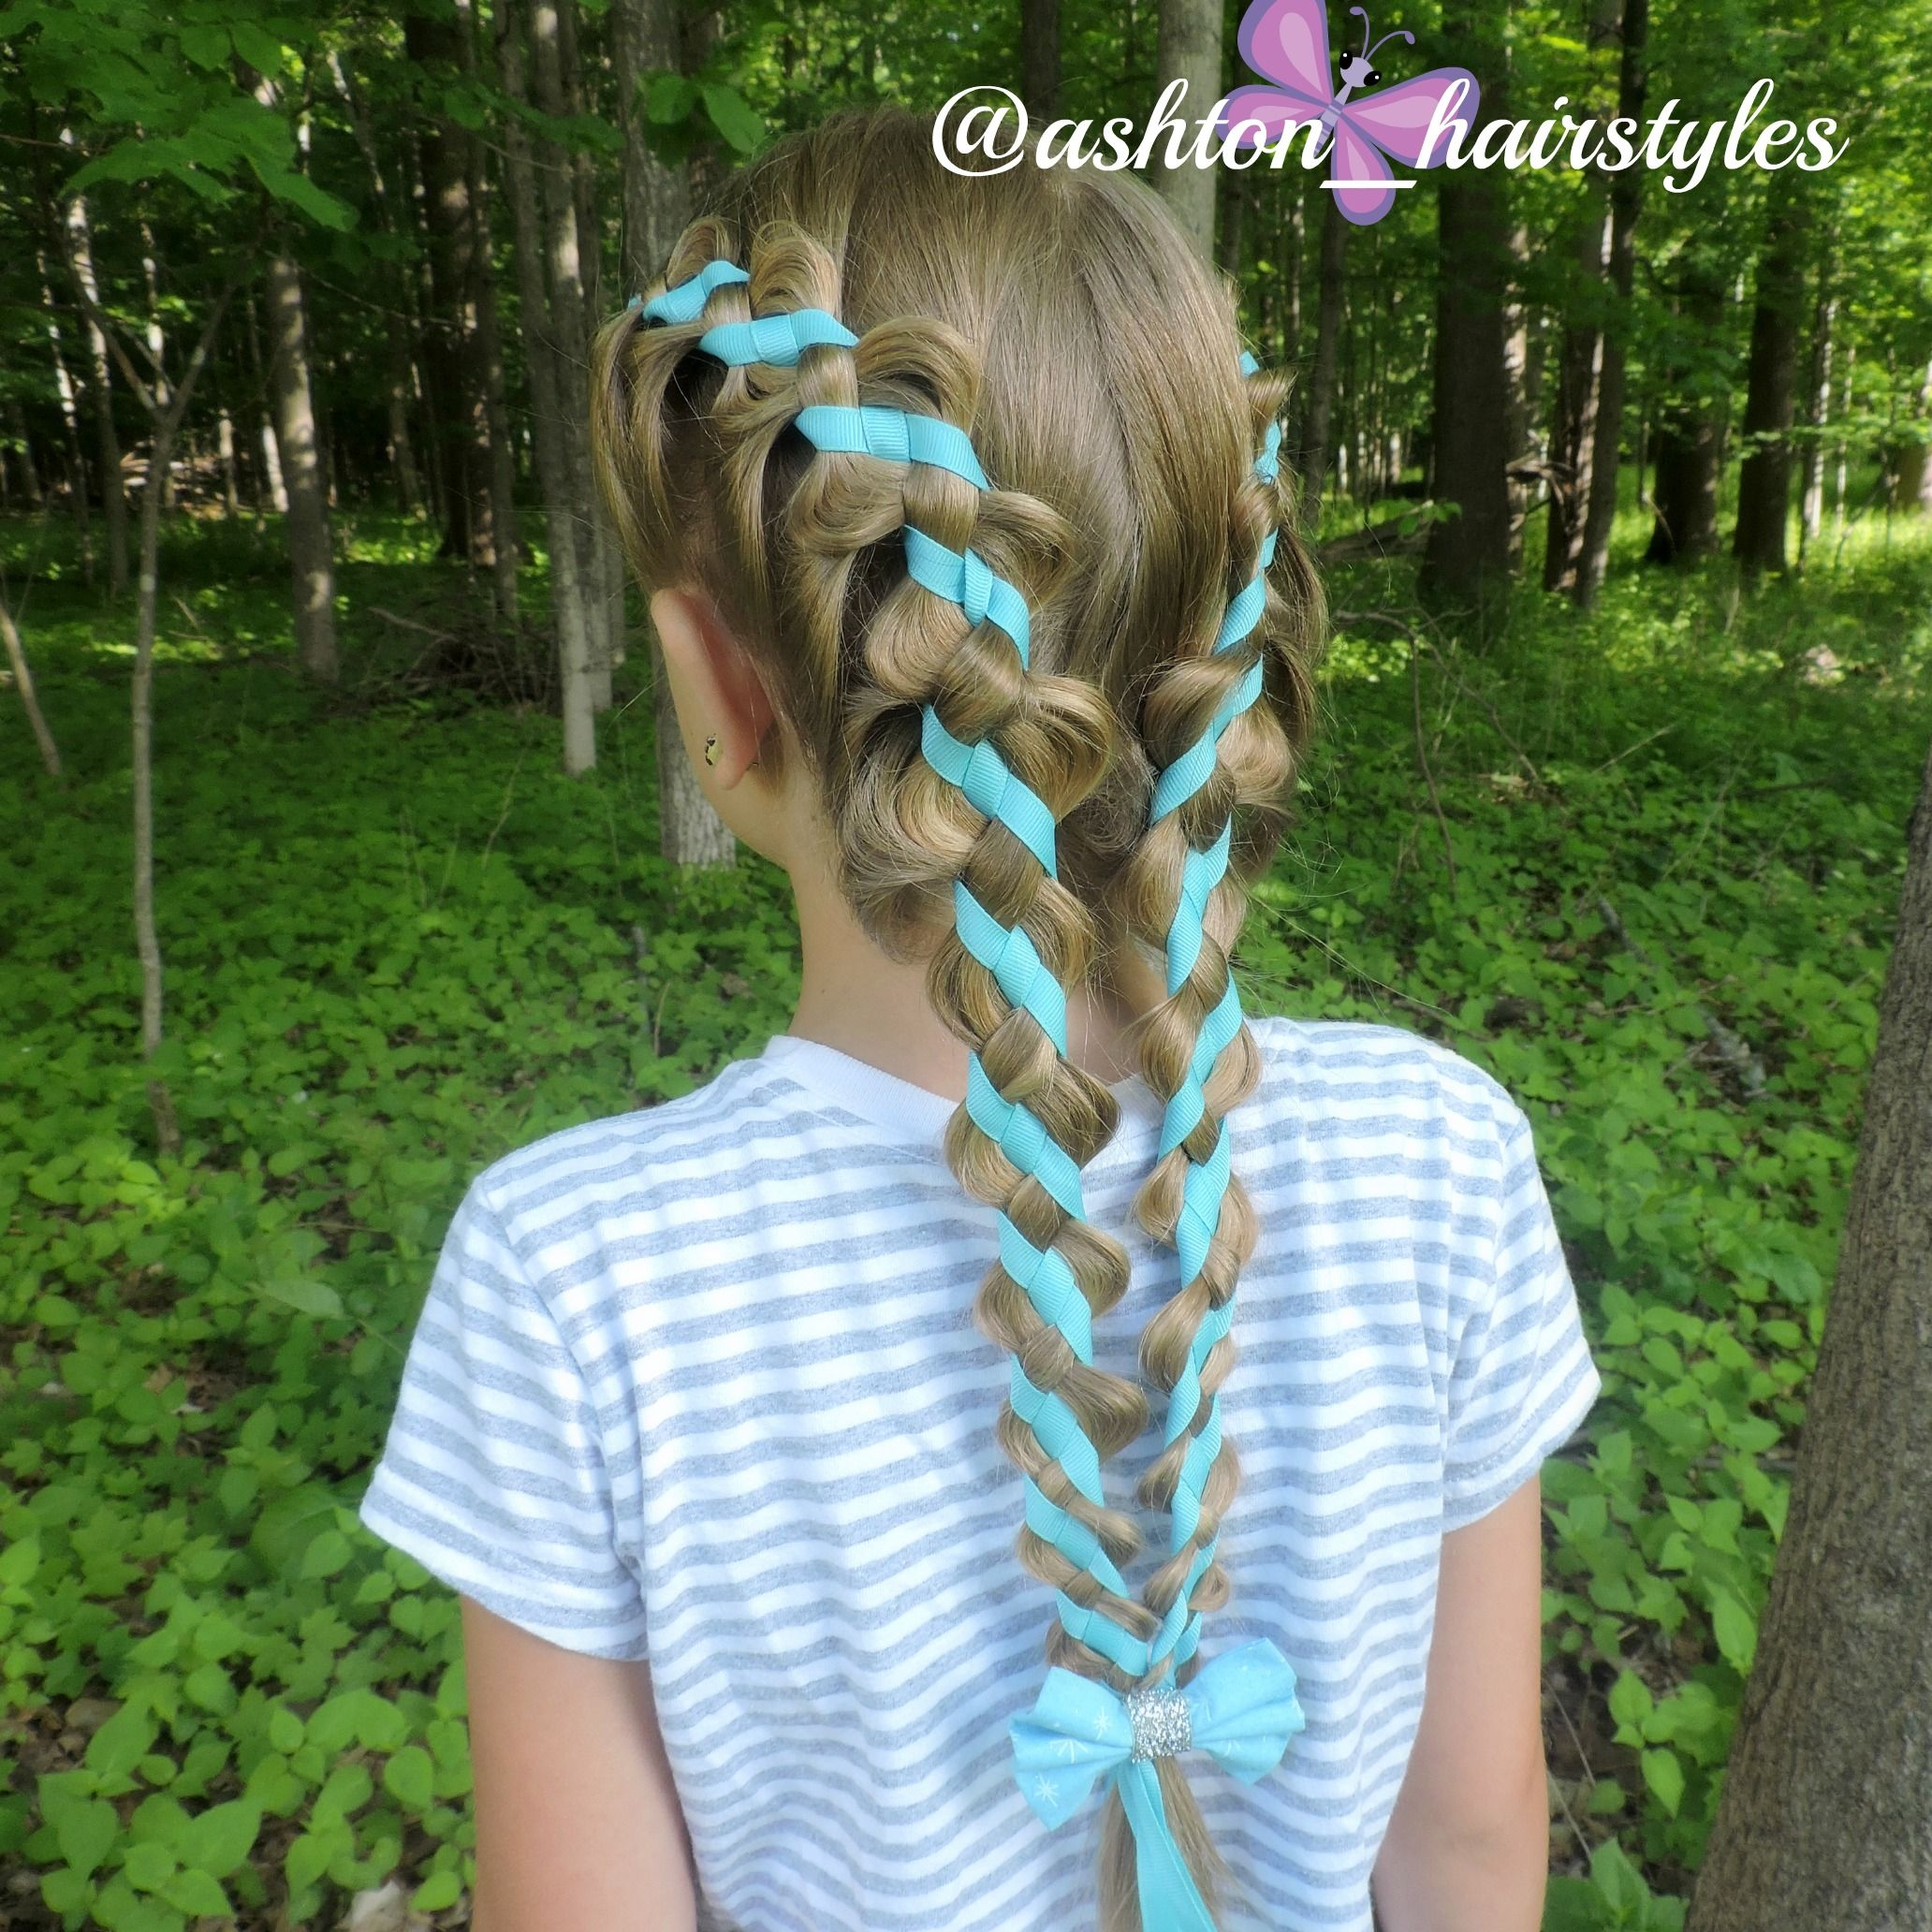 4 strand woven pigtails finished off with a cute Elsa bow by